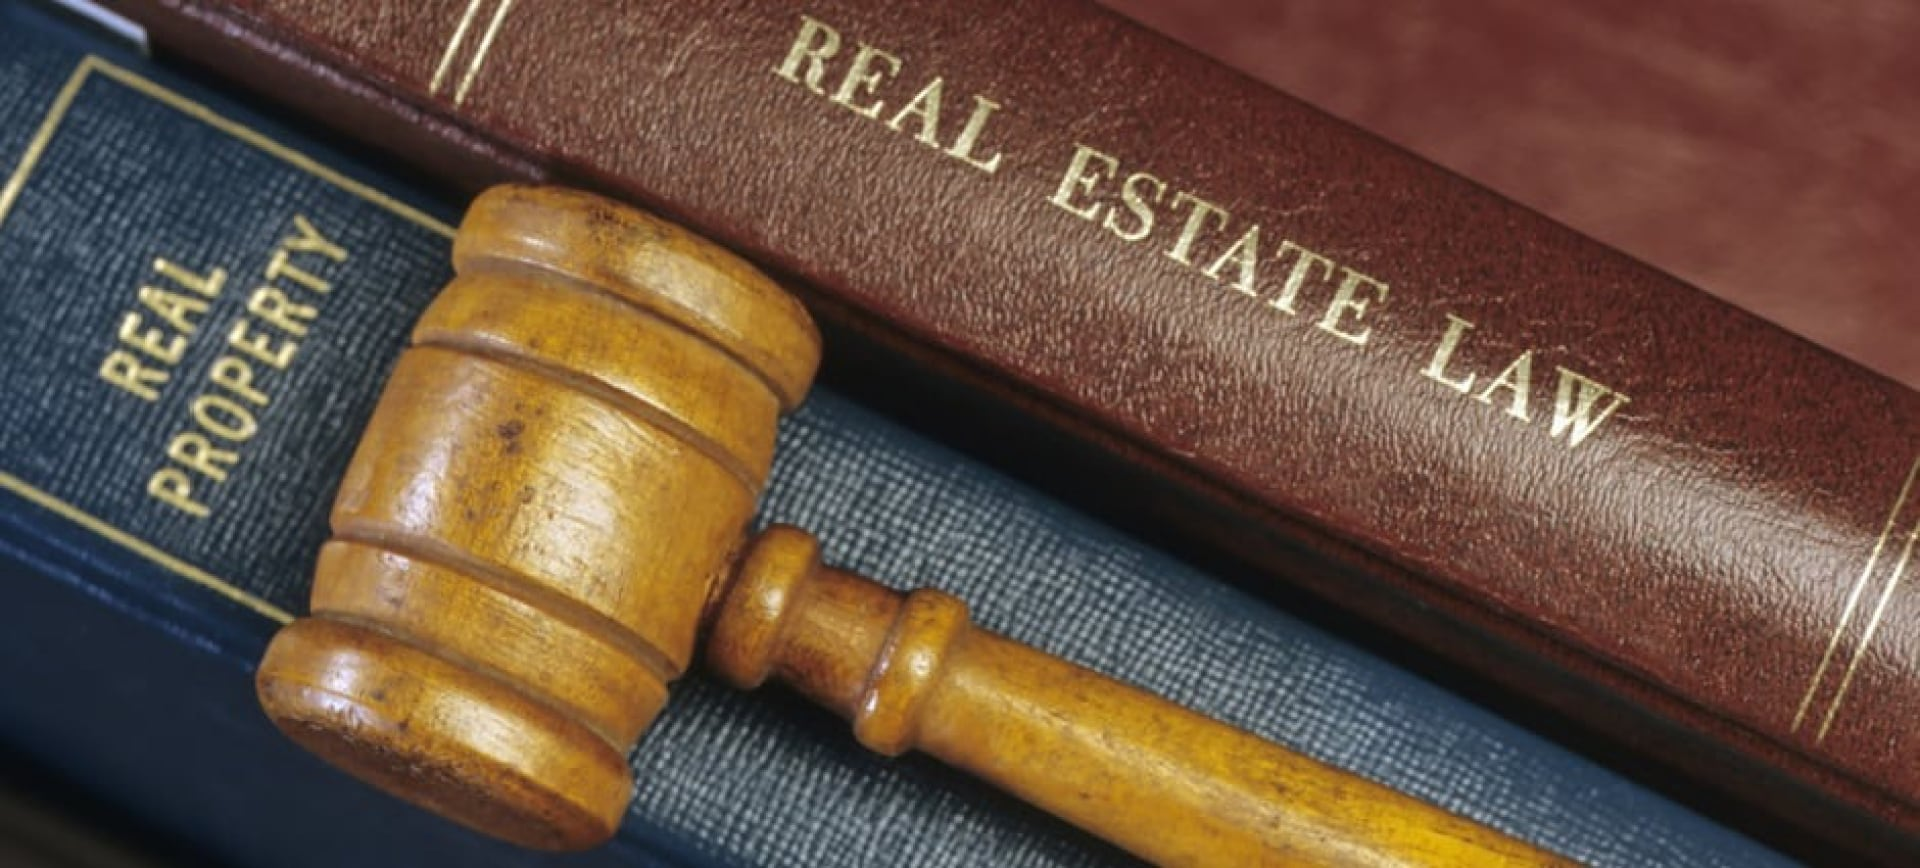 Picture of Real Estate Law Book